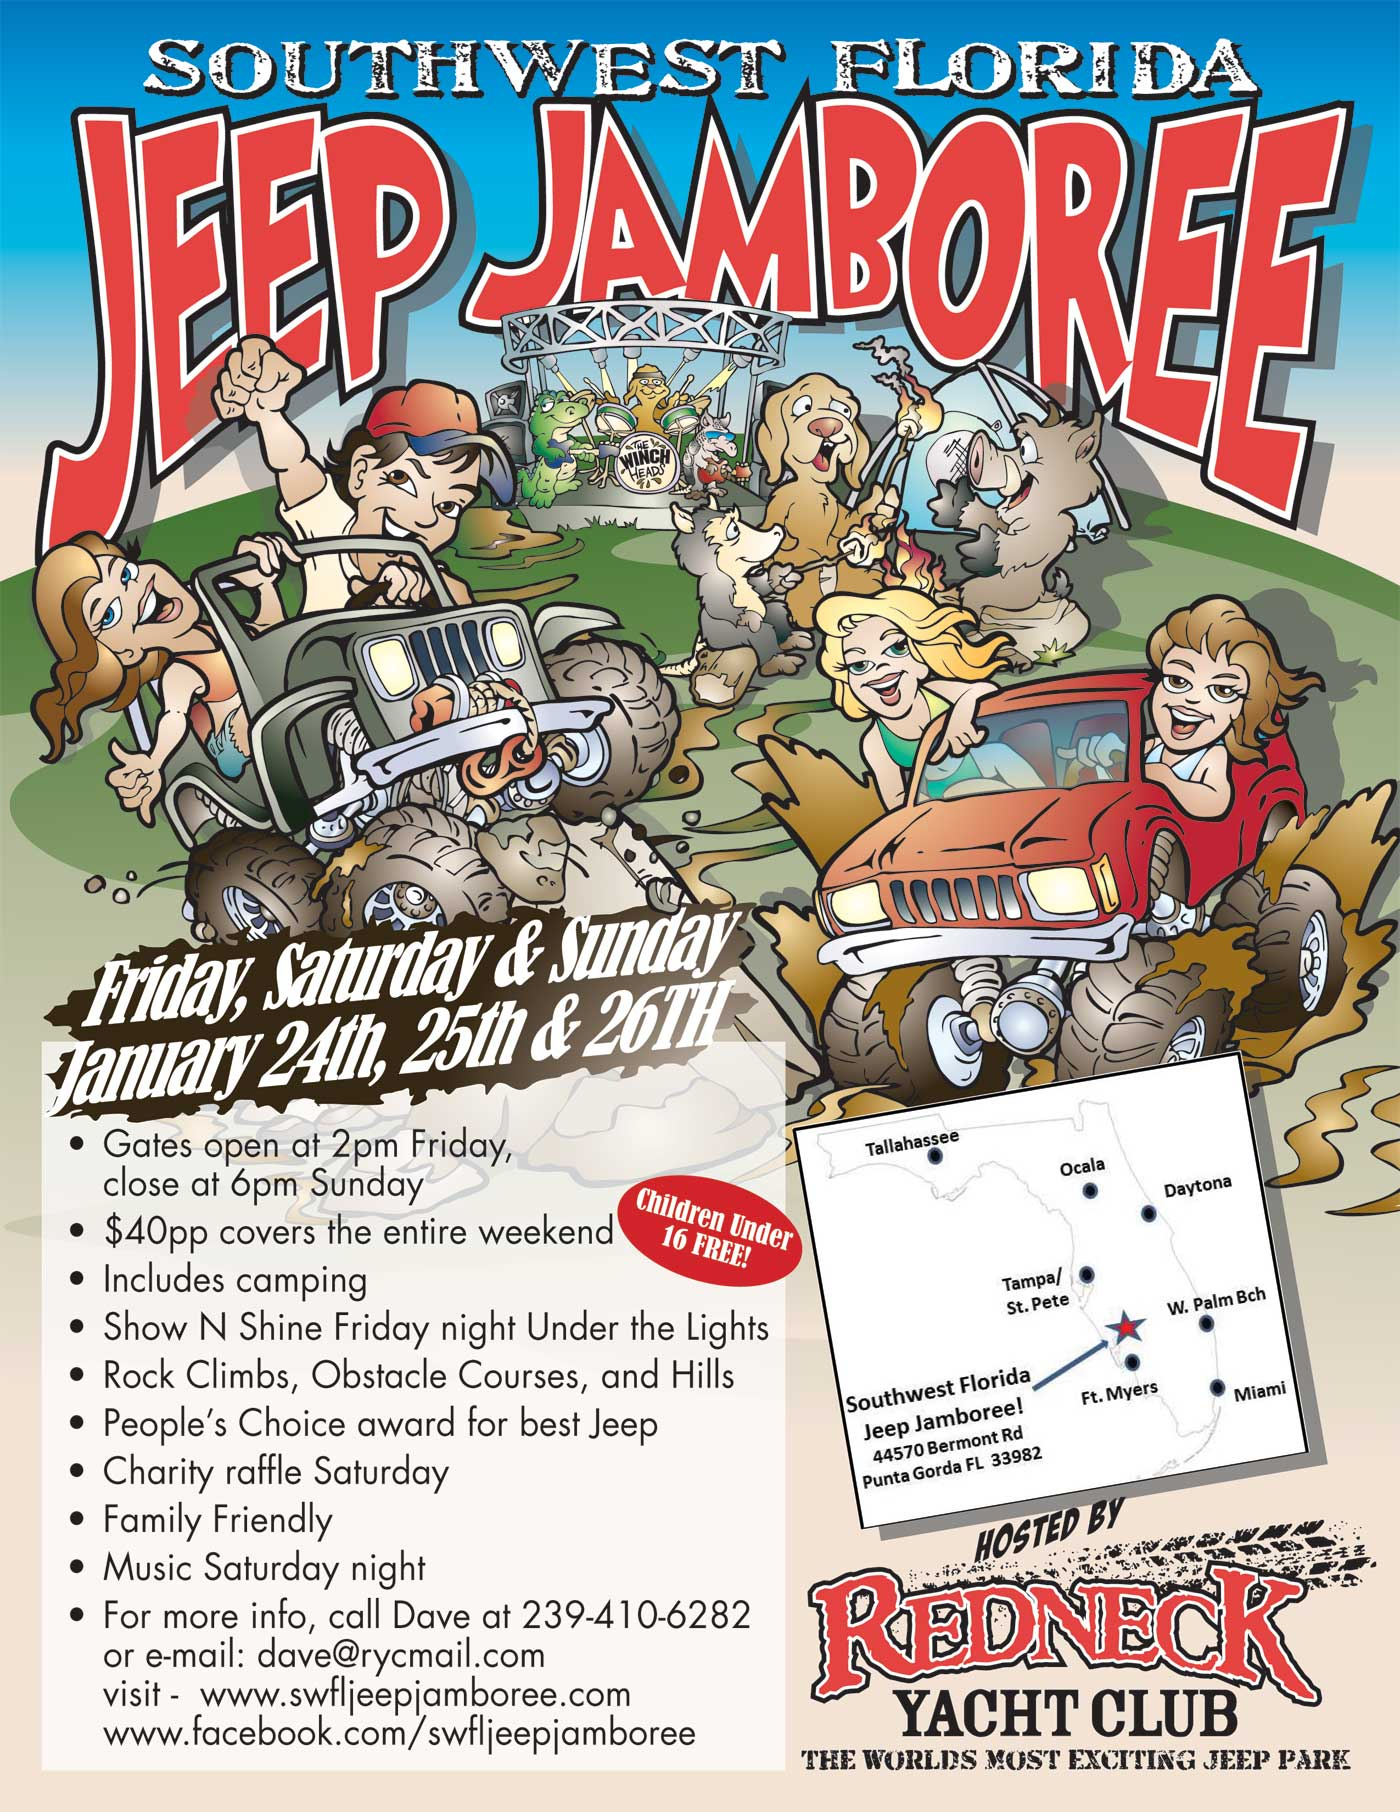 SW-Florida-Jeep-Jamboree-poster-small-file.jpg